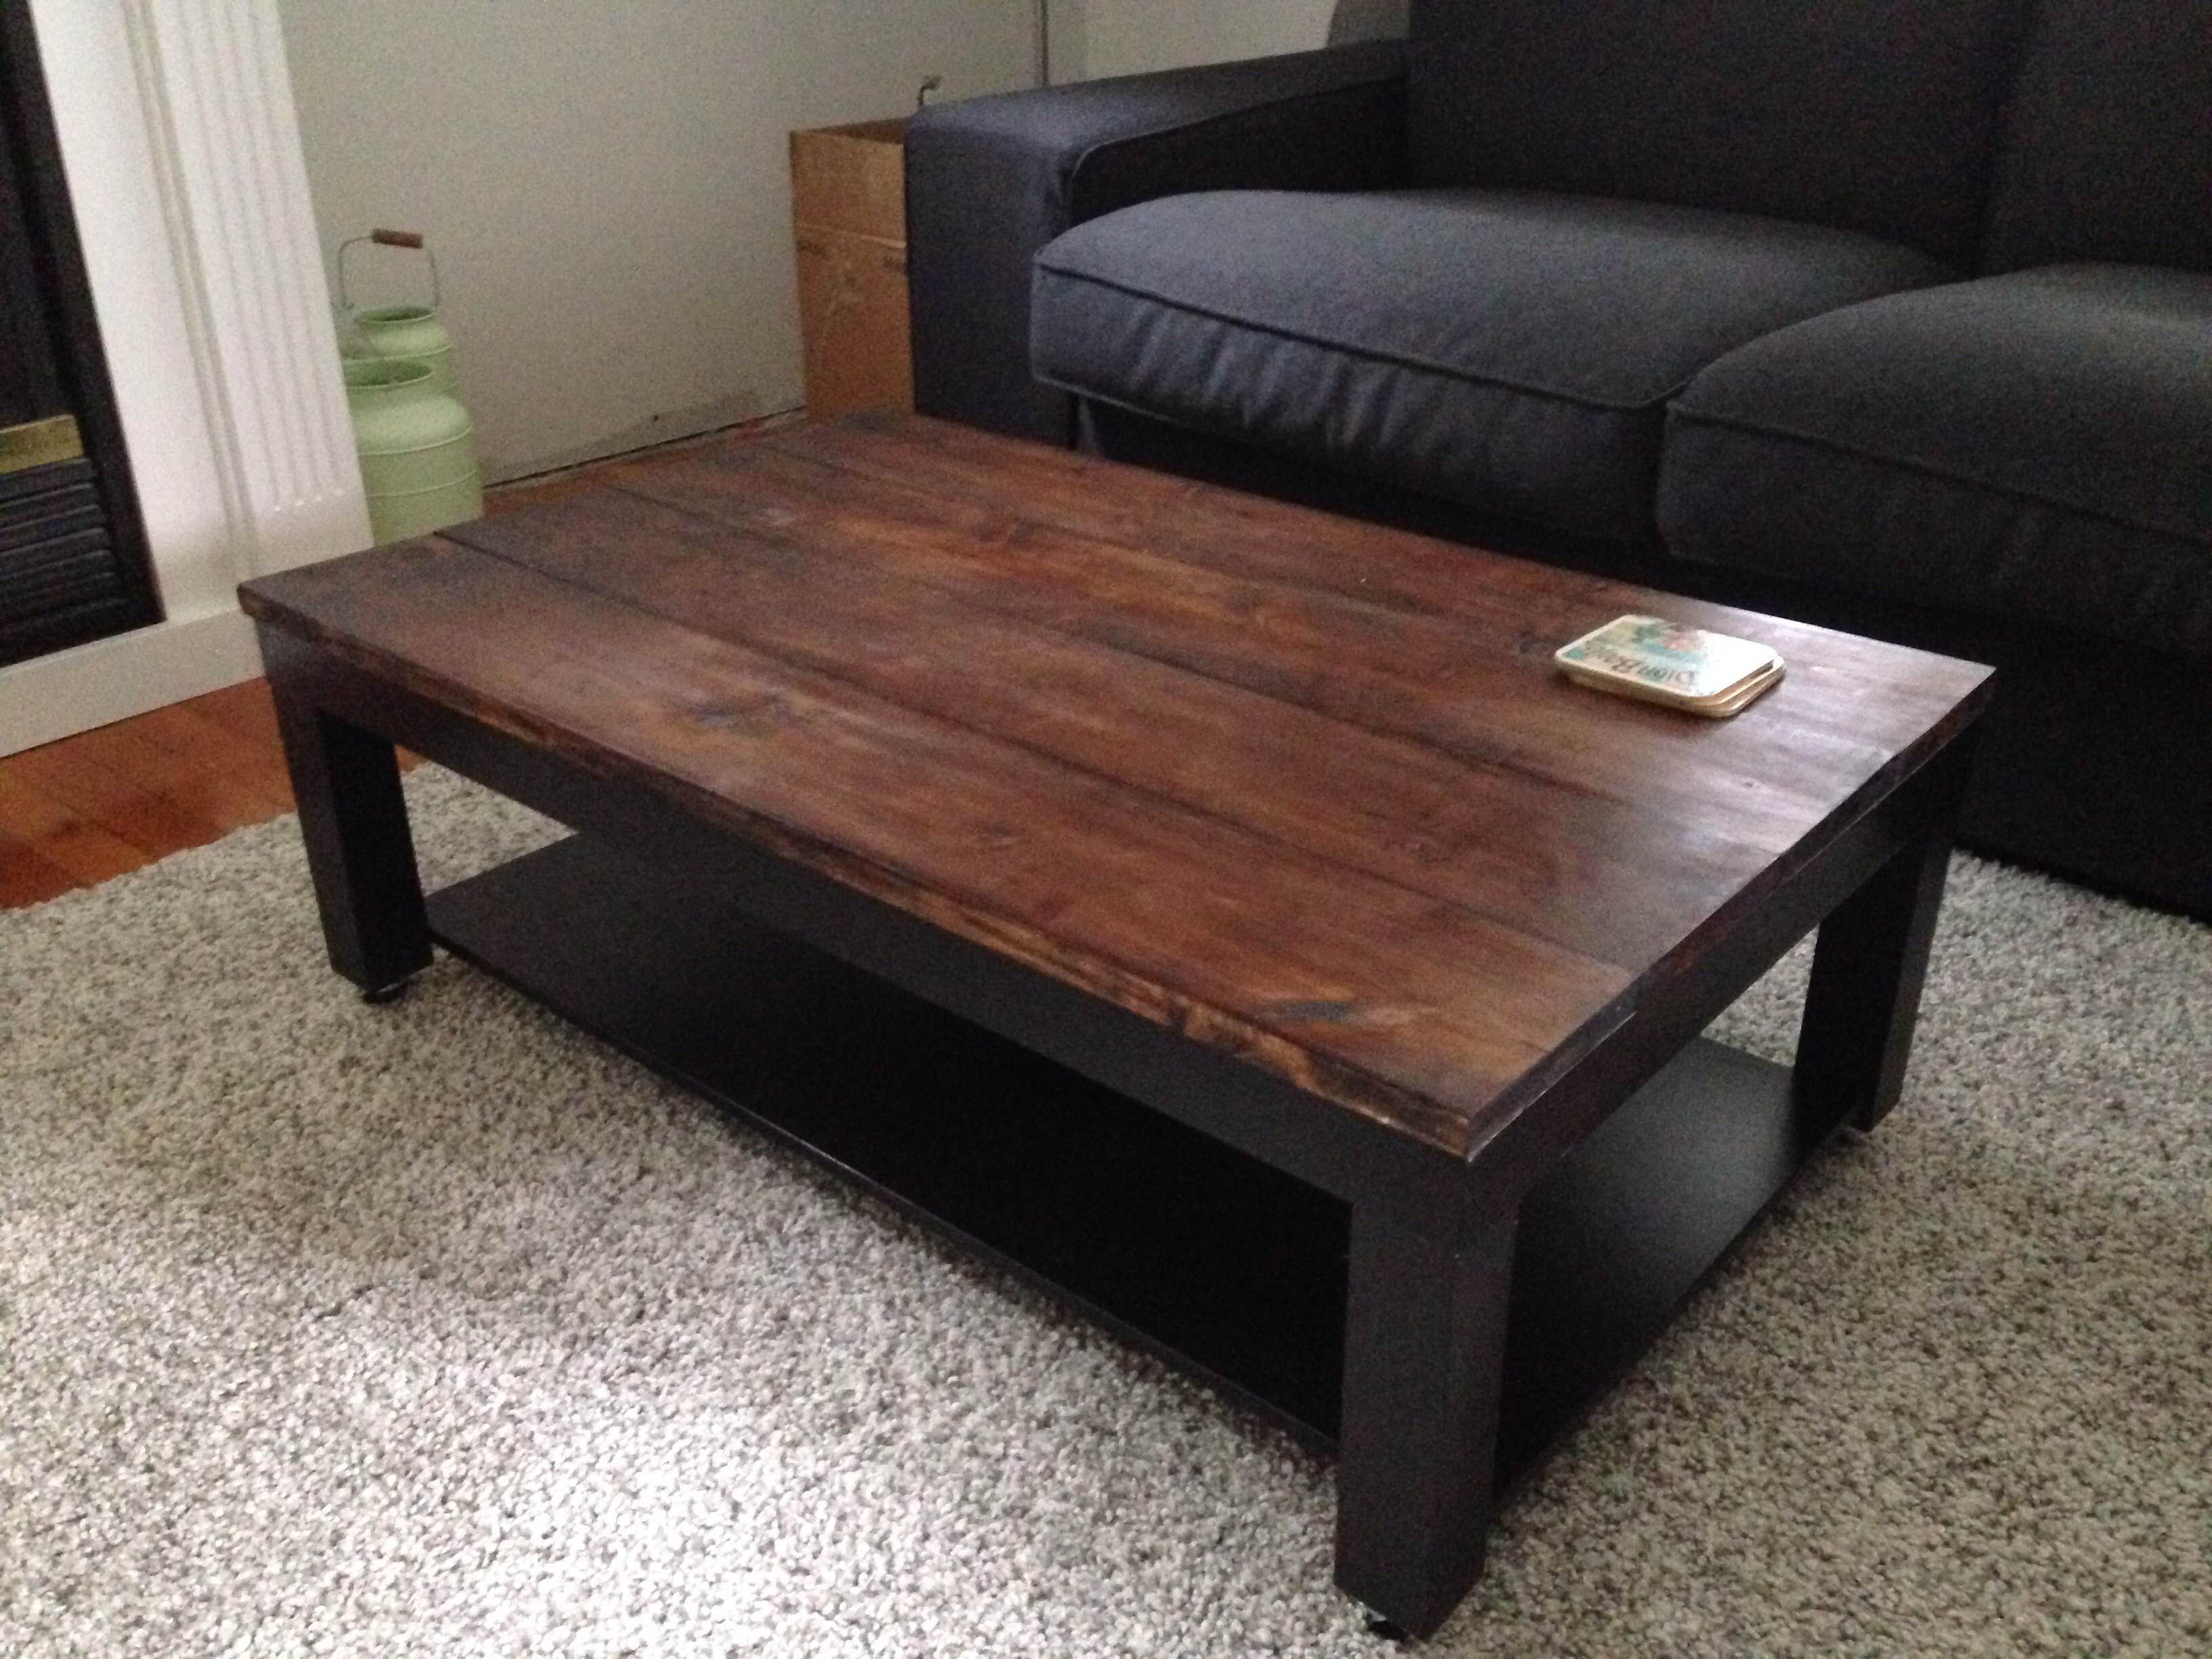 Best ideas about Lack Coffee Table . Save or Pin Ikea Lack Hack Now.